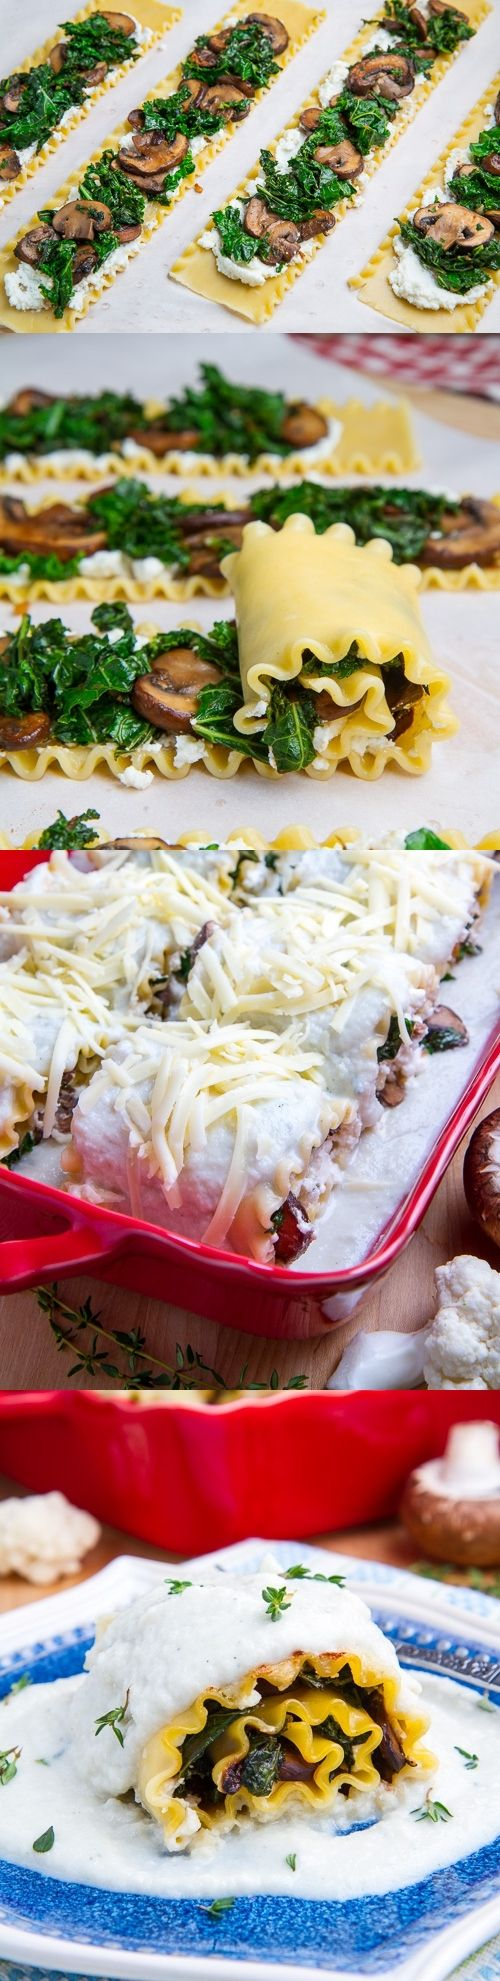 Mushroom and Kale Lasagna Roll Ups in Creamy Gorgonzola Cauliflower Sauce